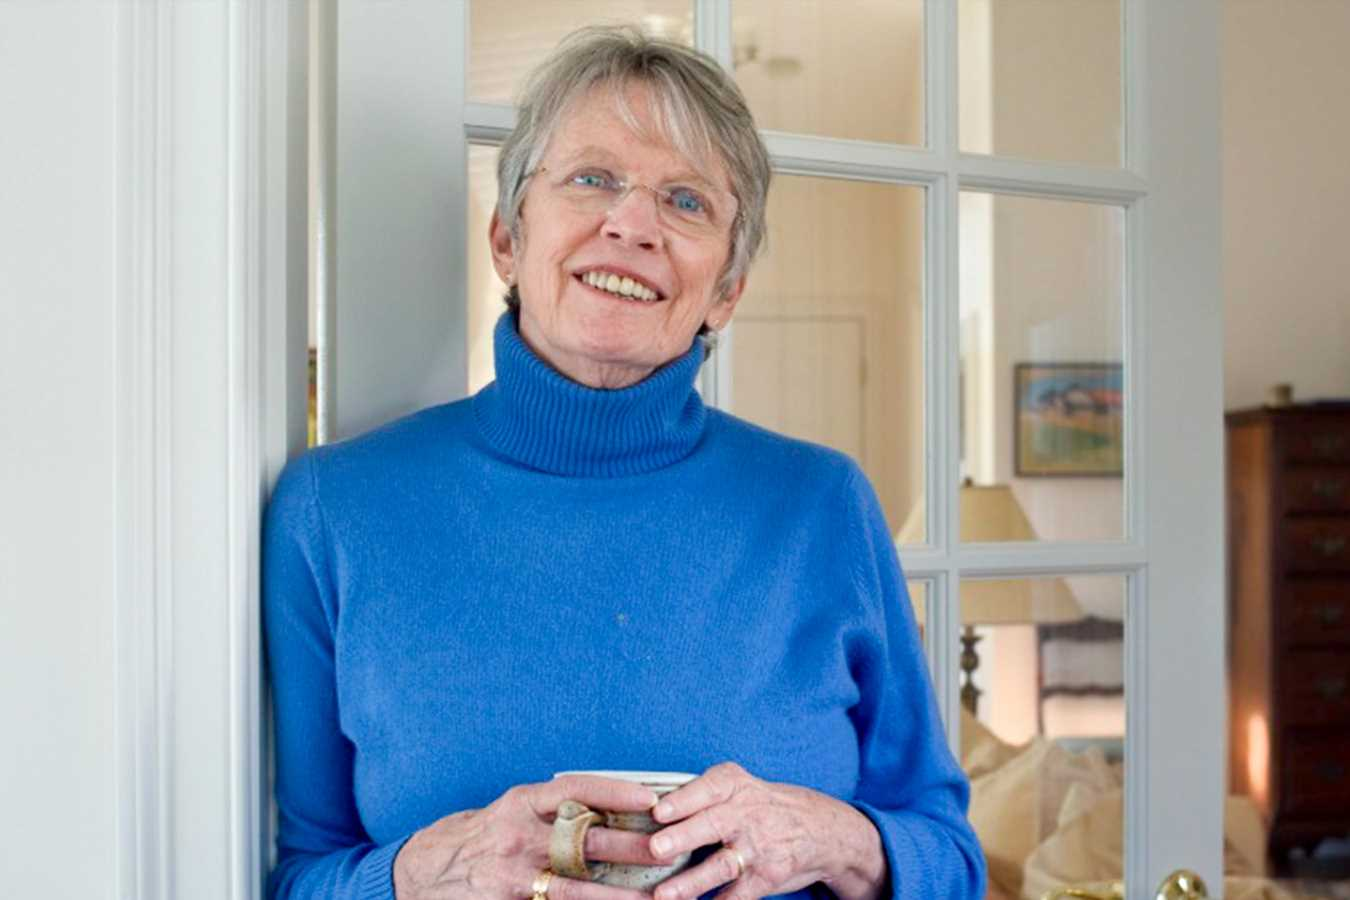 On the Horizon: The Giver author Lois Lowry announces next project